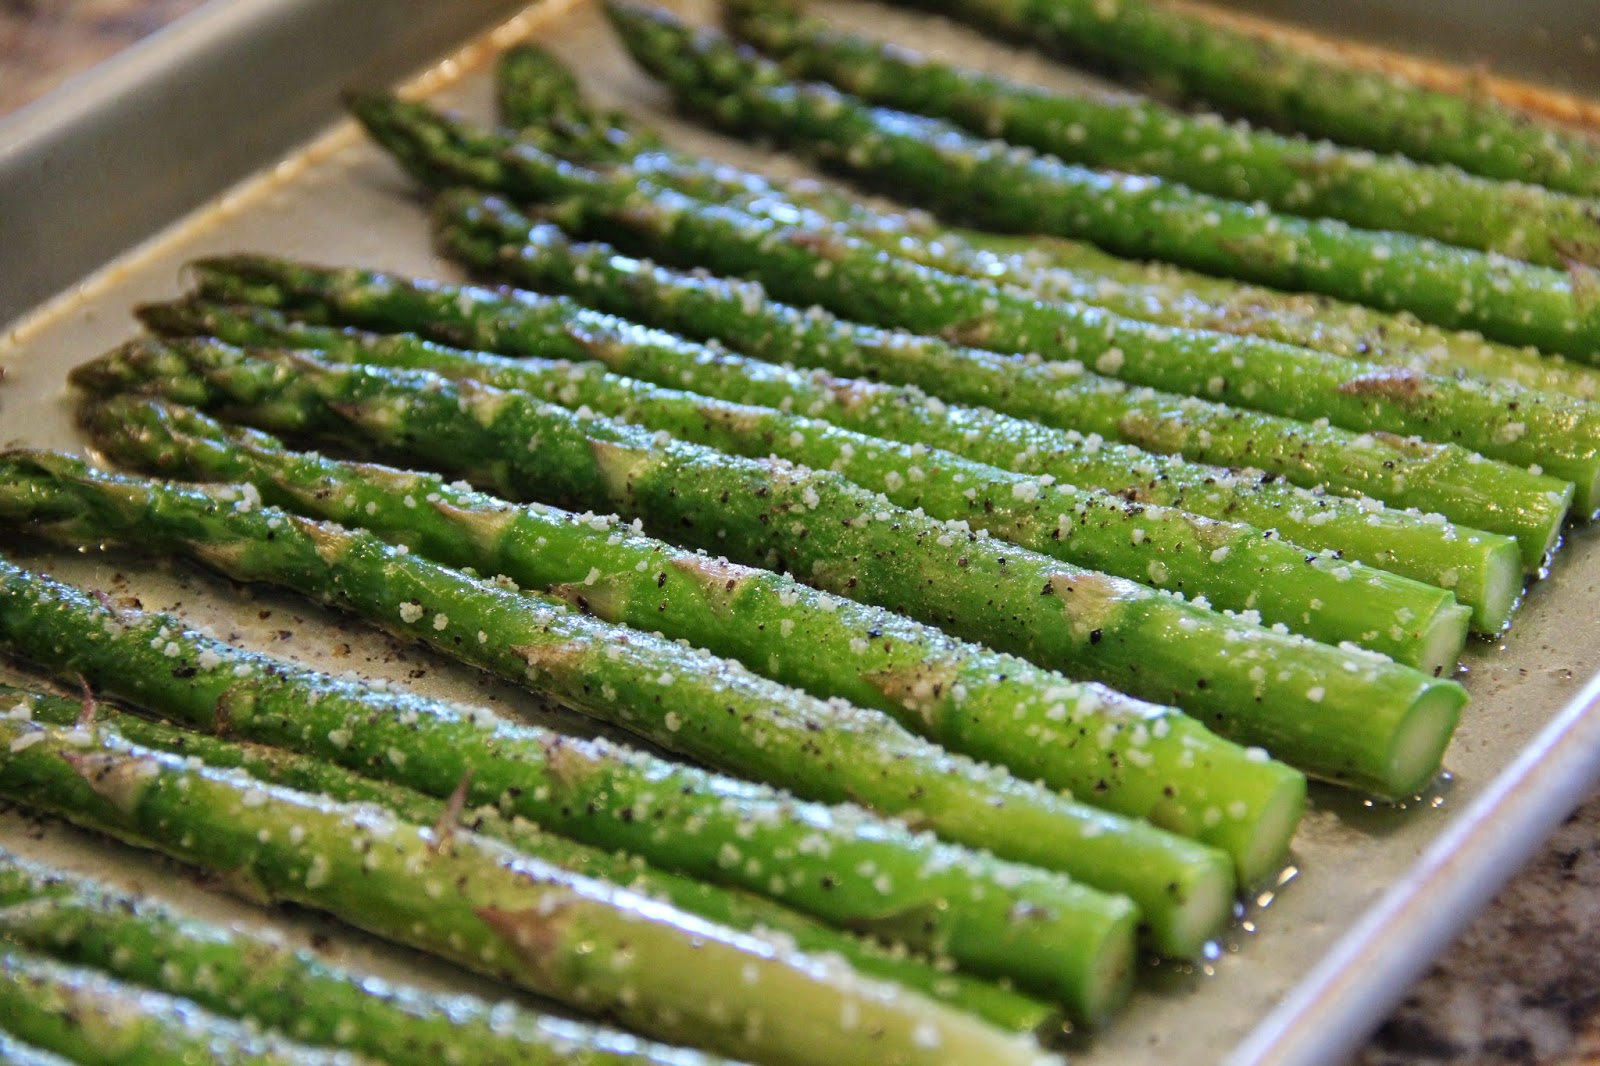 Cookie Sundays: Oven Roasted Asparagus Spears